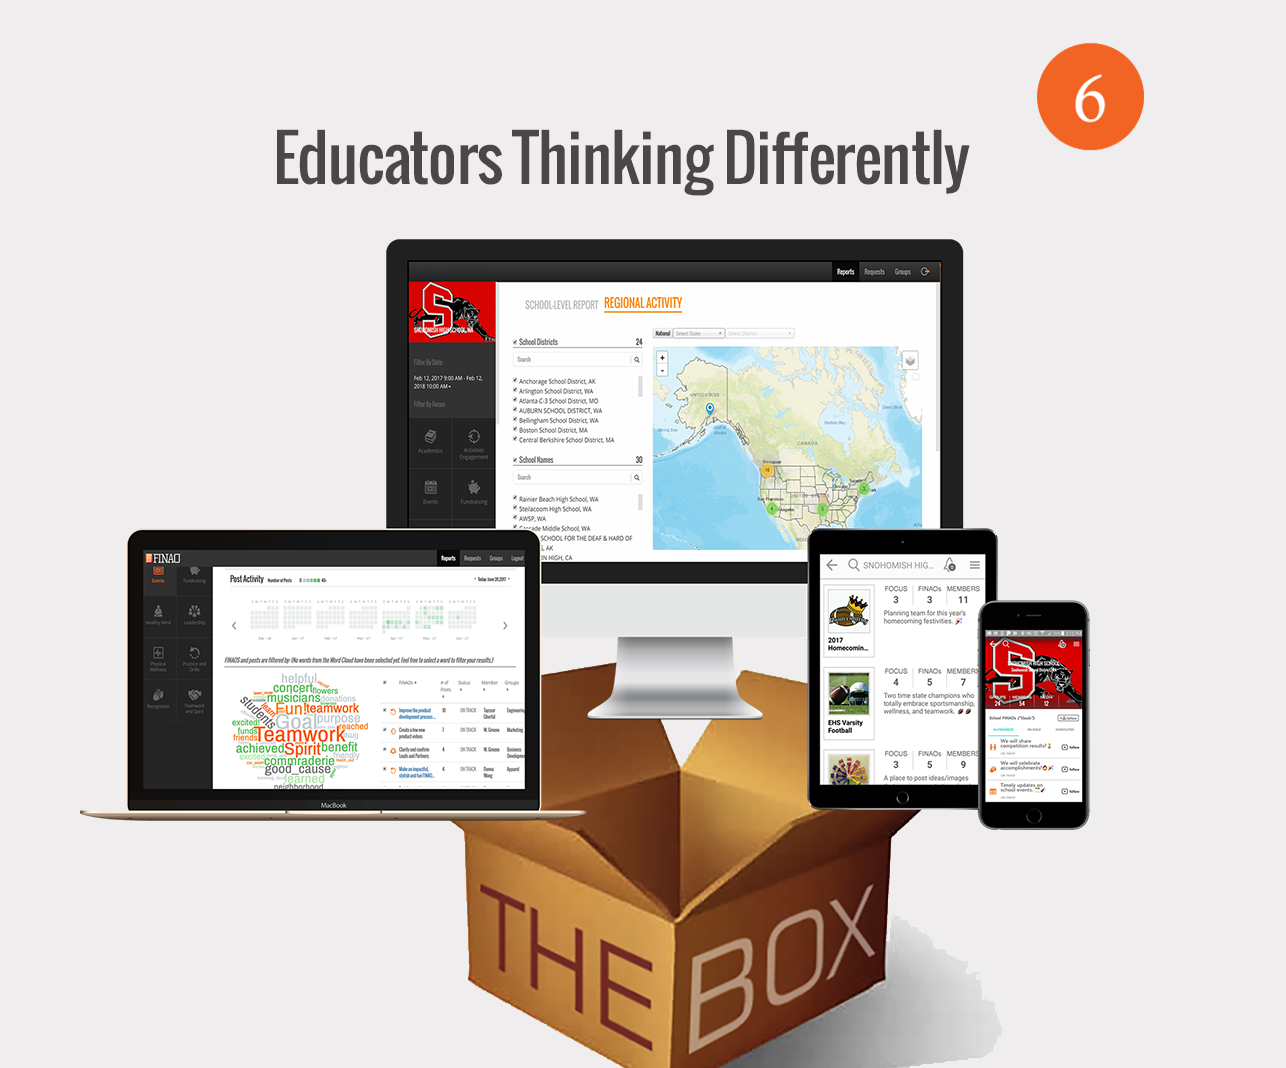 Think Differently - Informed By Data